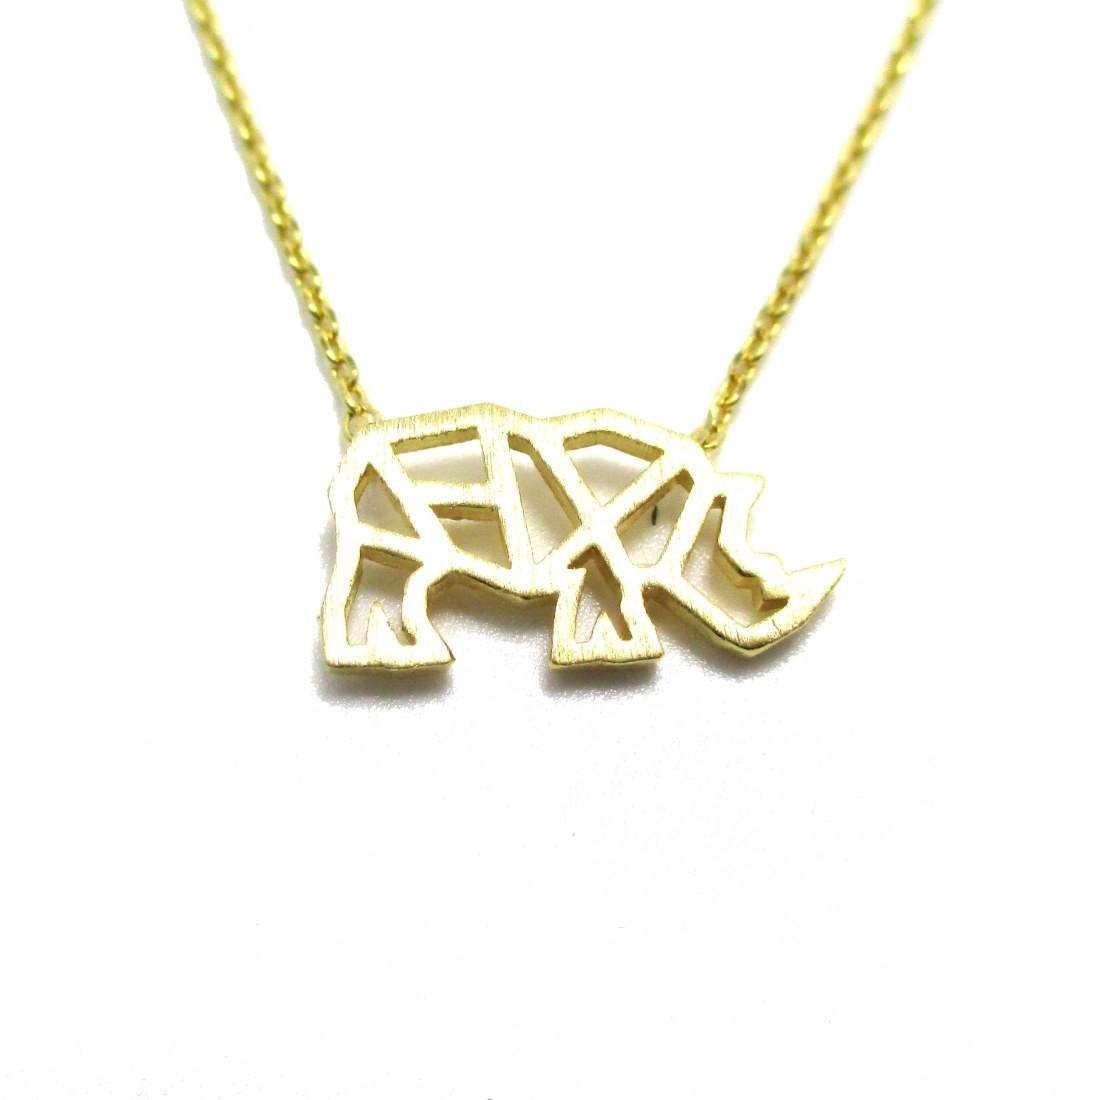 Rhino Rhinoceros Outline Shape Pendant Necklace in Gold